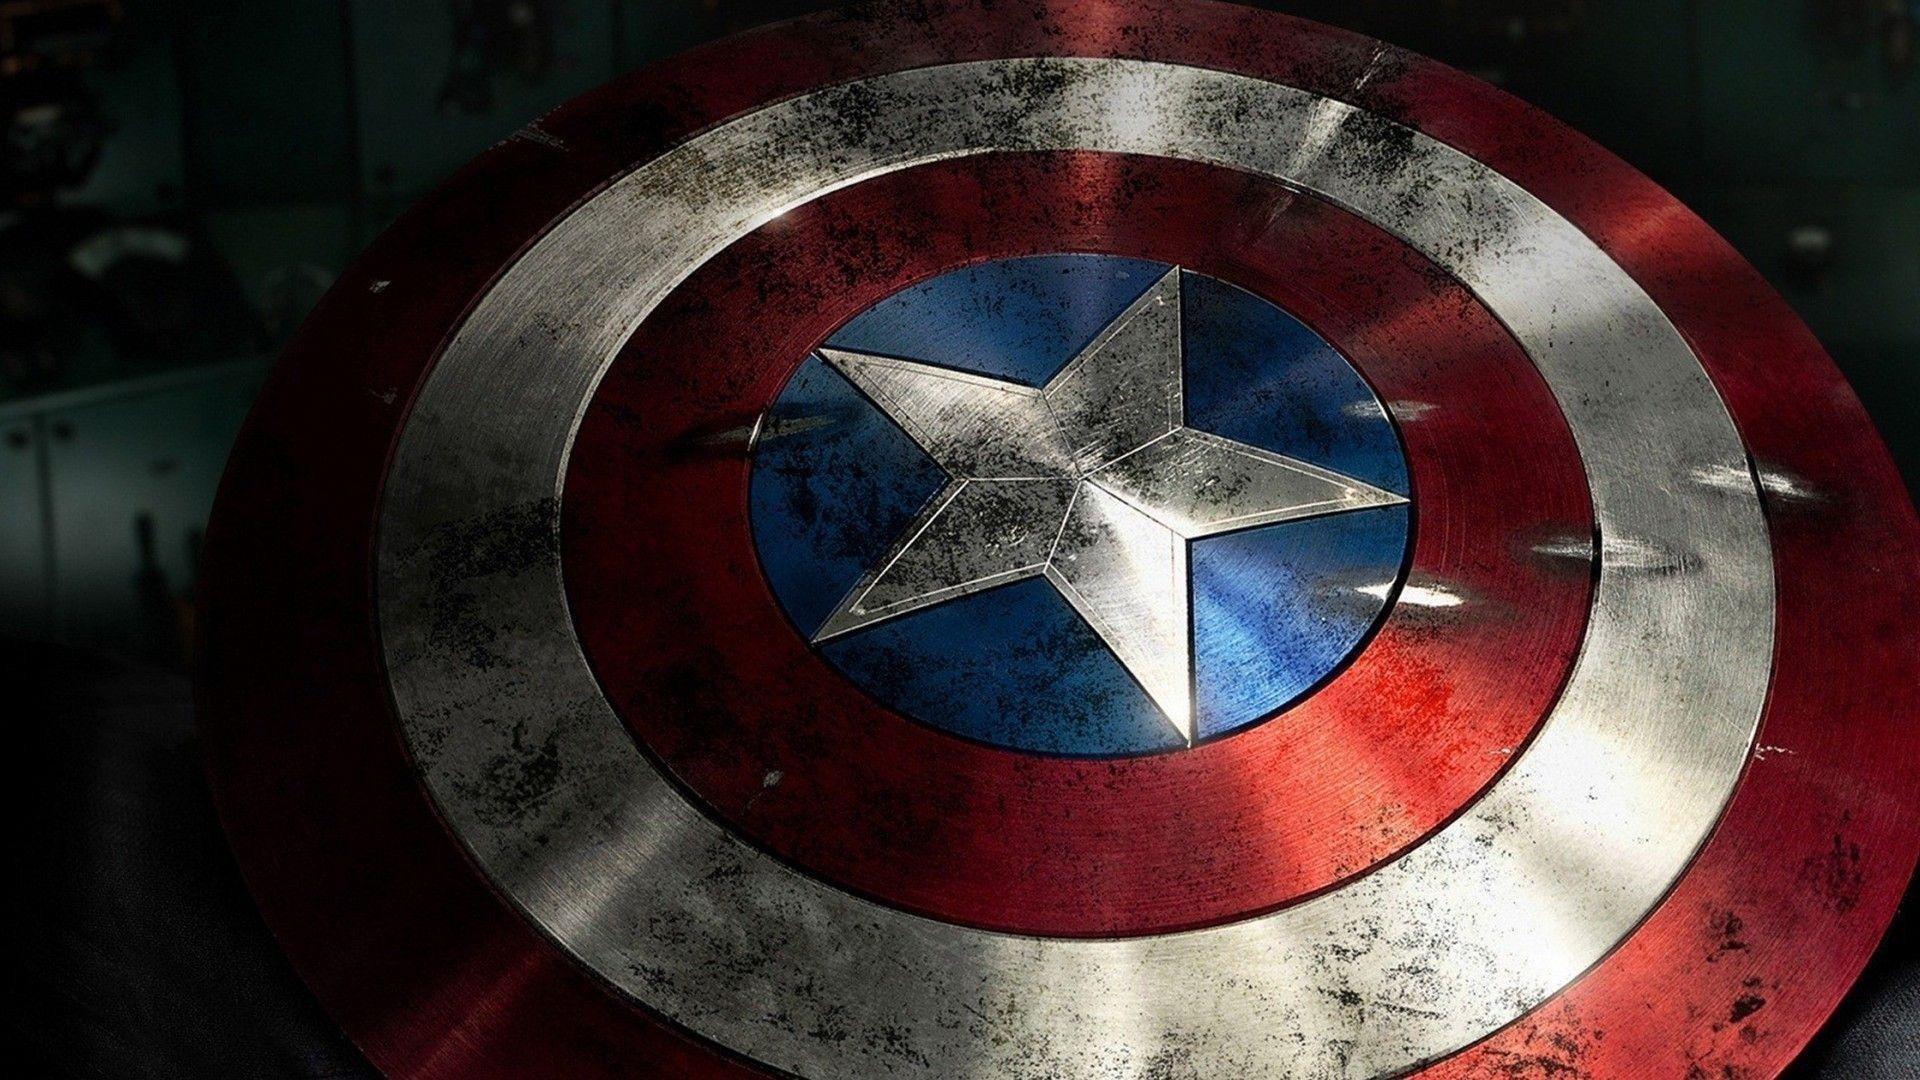 1920x1080 Superhero Wallpaper Vibranium By Ninja Of Athens On DeviantArt